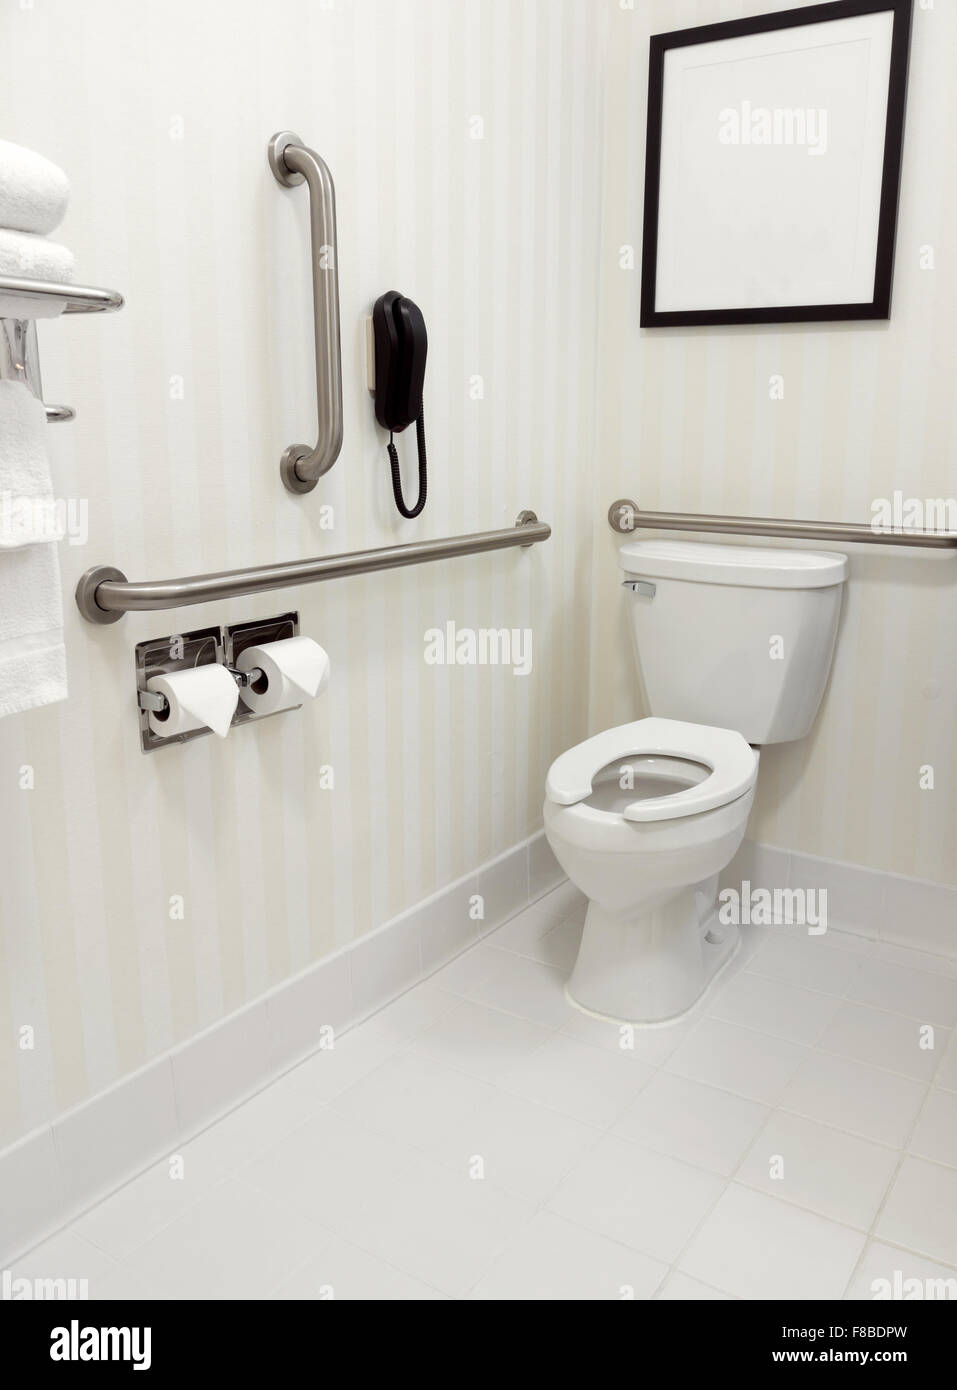 Handicapped disability access bathroom with grab bars and toilet ...